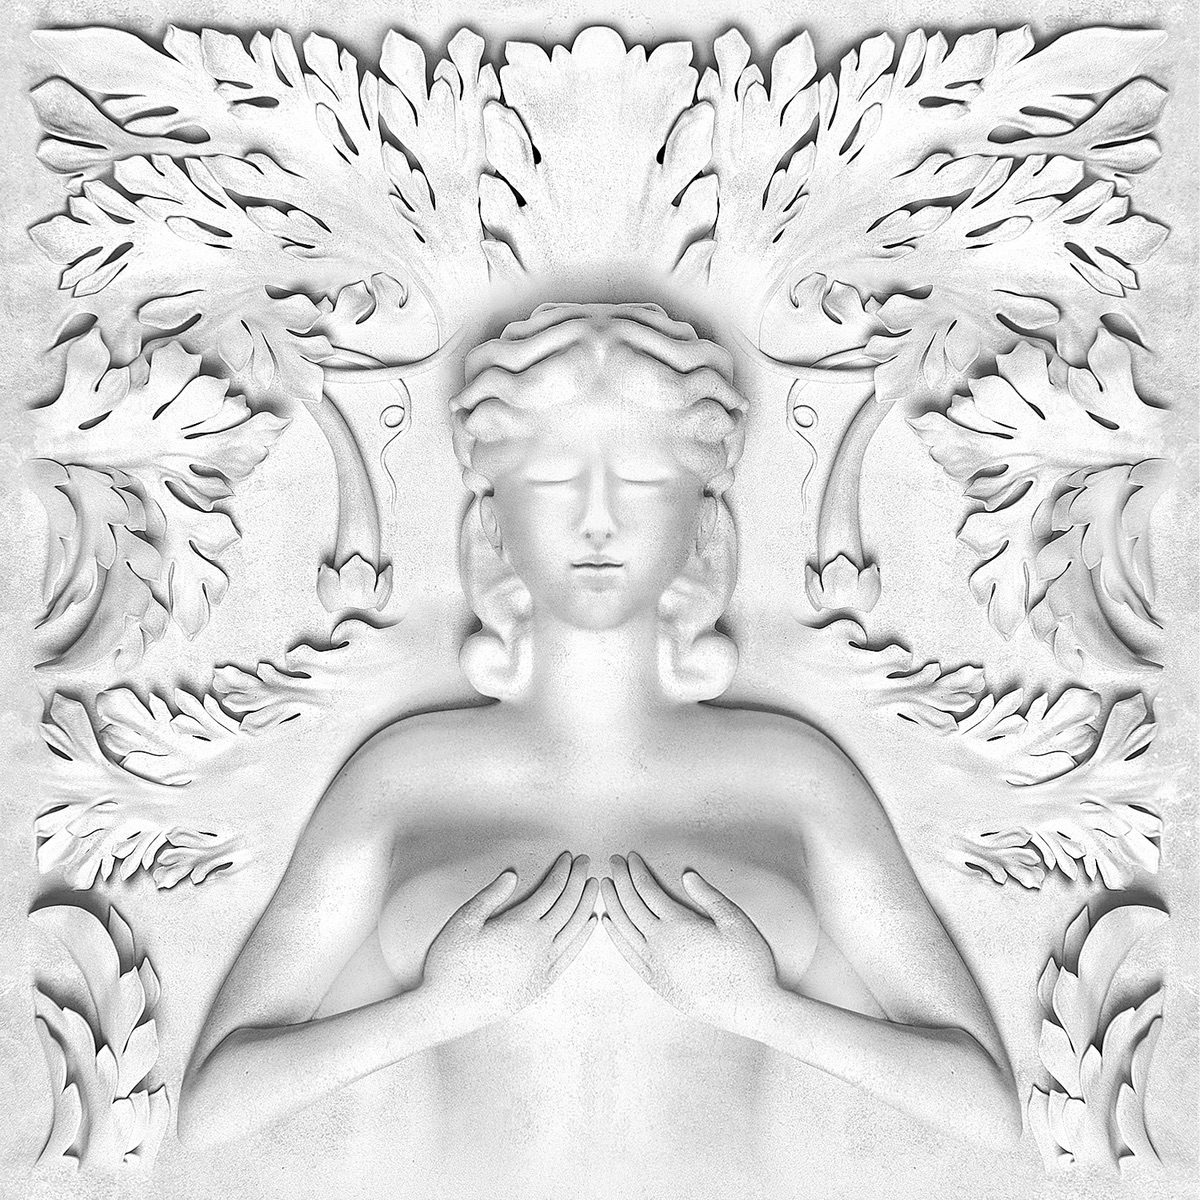 G.O.O.D. Music - Kanye West Presents Good Music Cruel Summer Cover